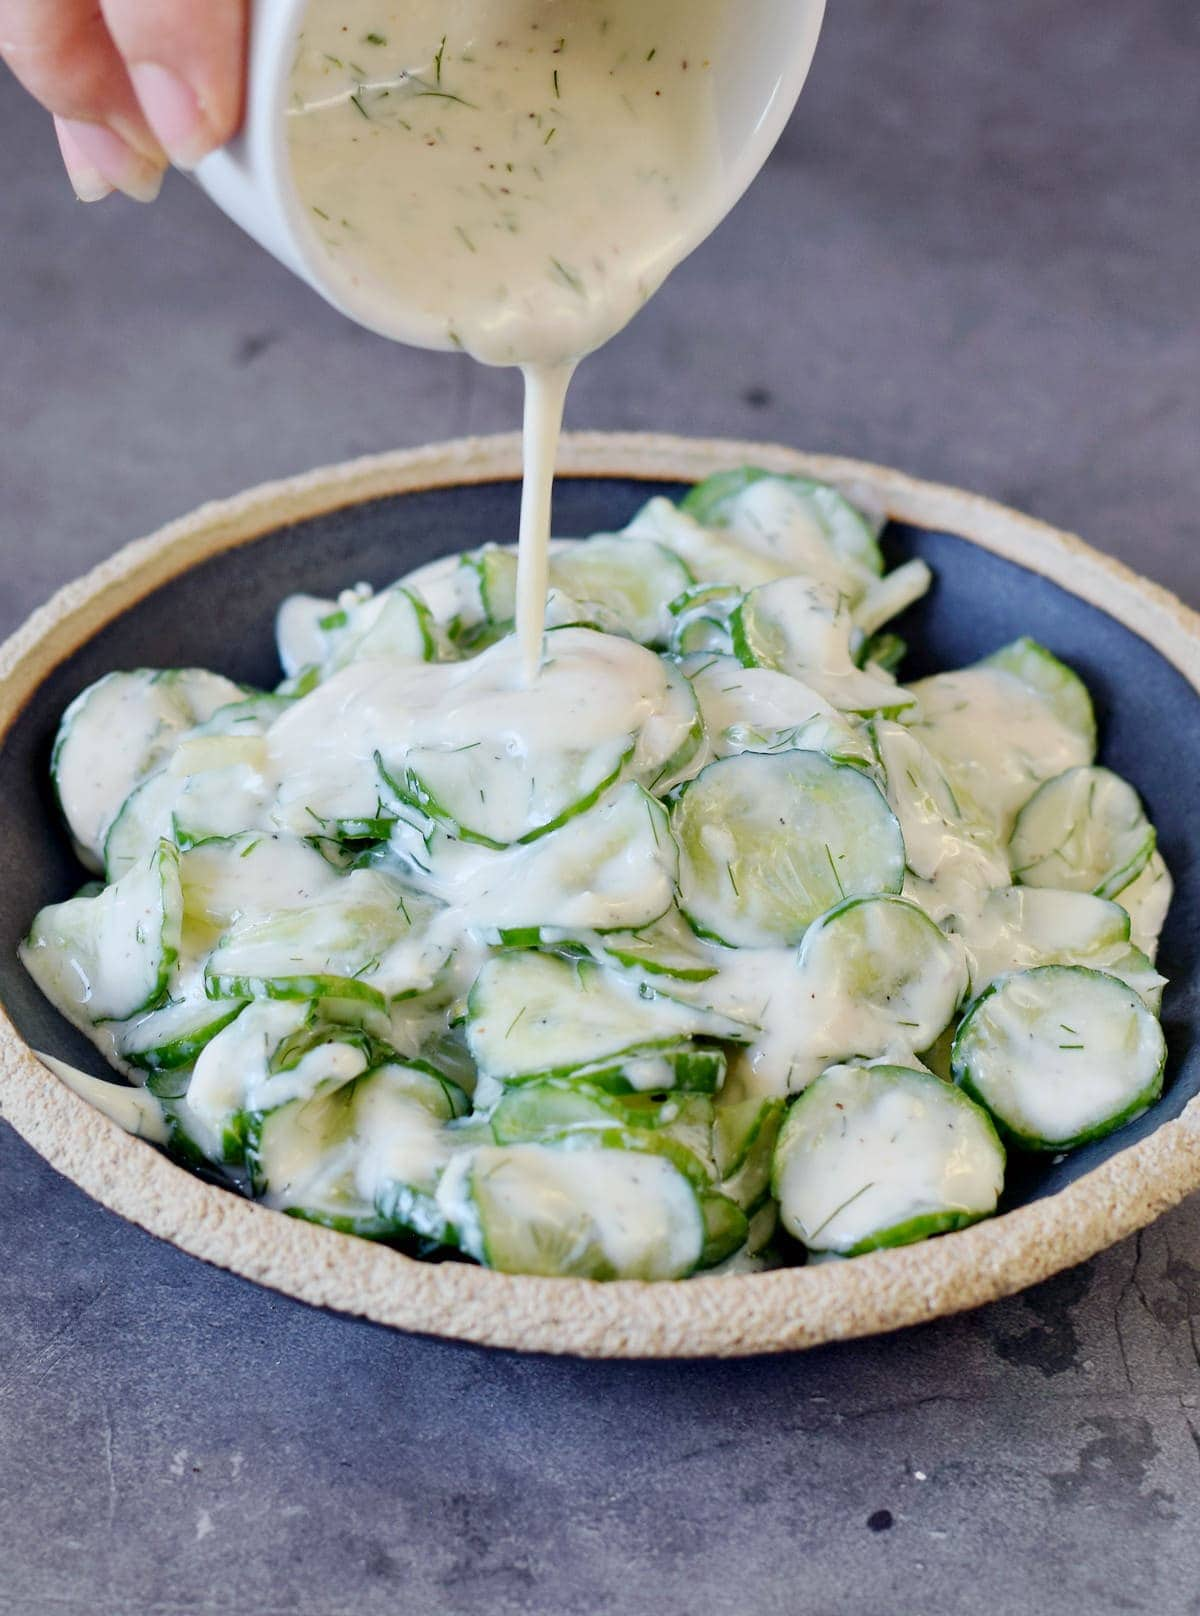 Pouring creamy dill dressing over German cucumber salad